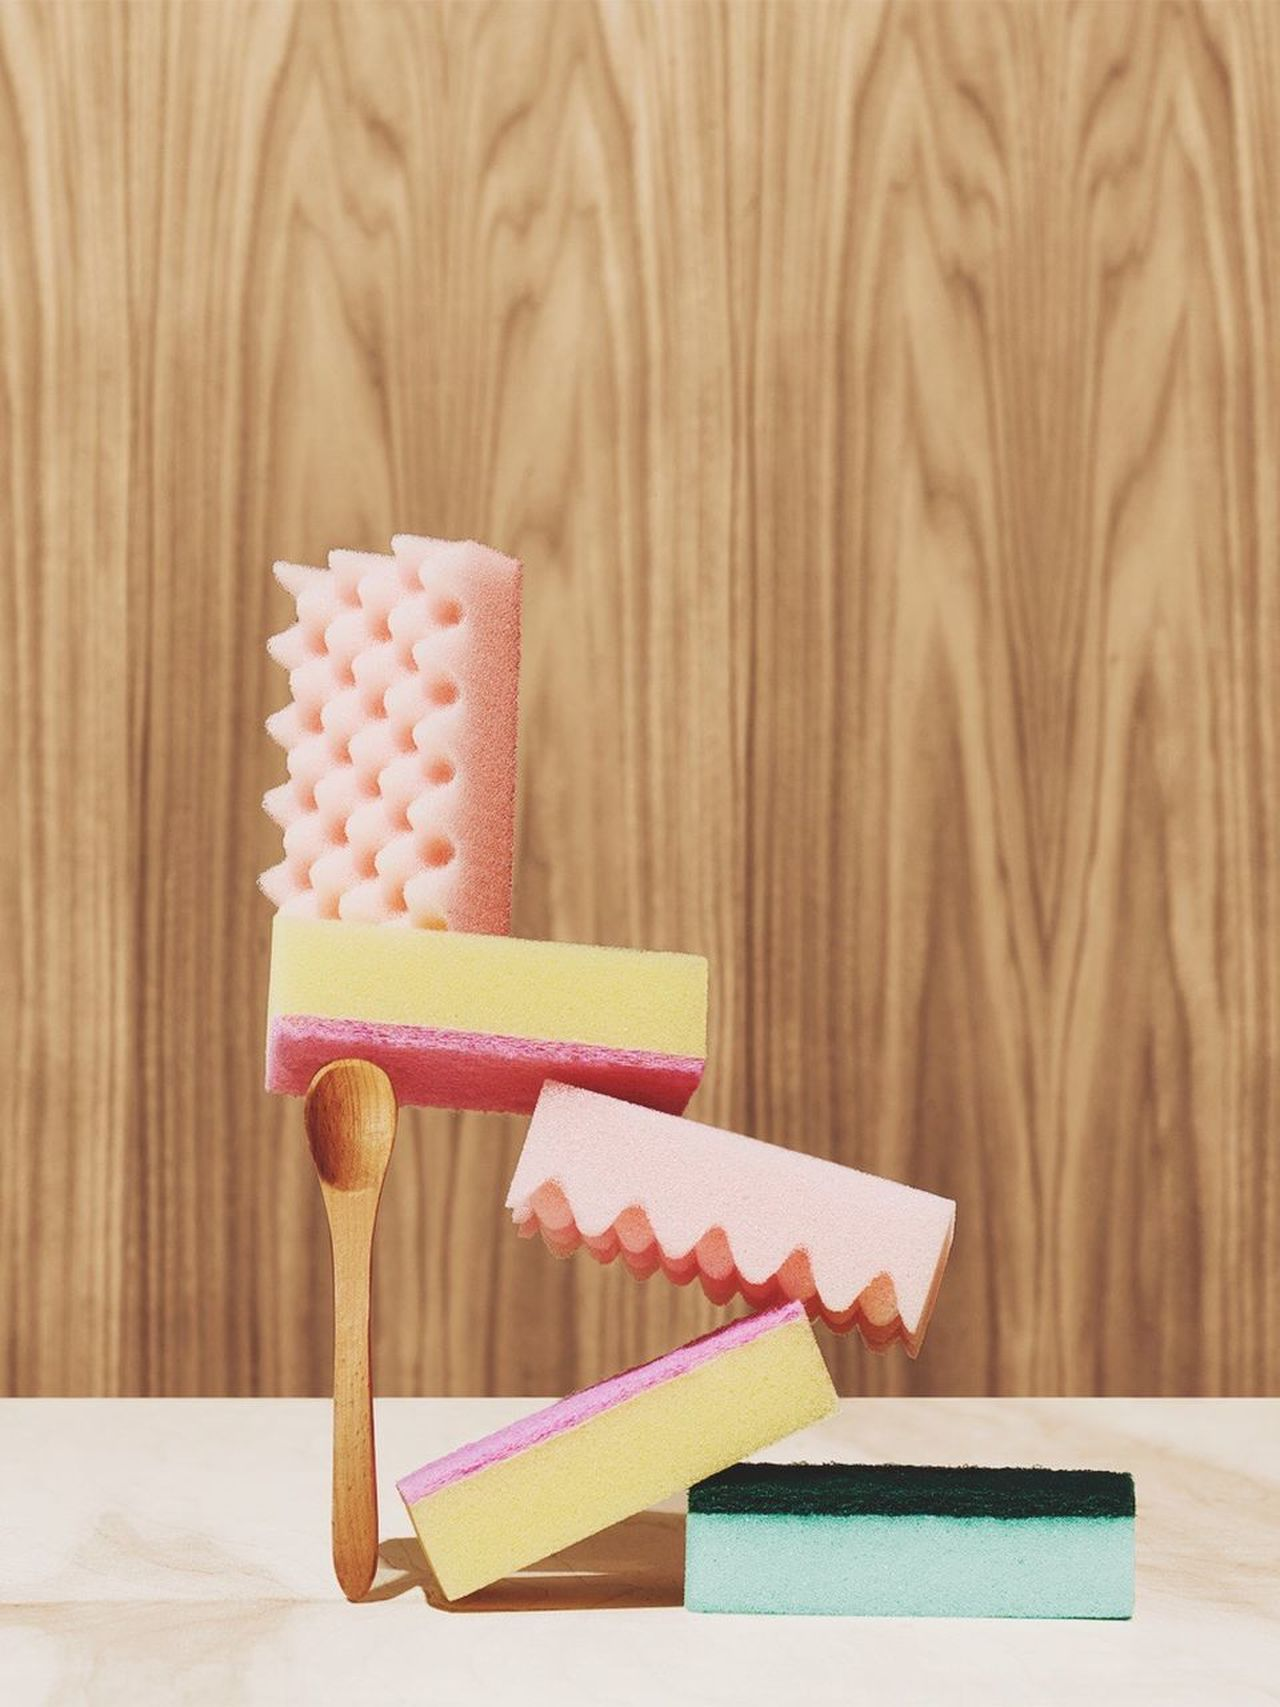 Wood - Material Indoors  Table Sponge Wooden Spoon Daiso Balancing Balancing Act Wood Paneling Wood Grain Shapes And Forms Fresh on Market 2017 Studio Shot Monochrome_life Suspension No People Close-up Day